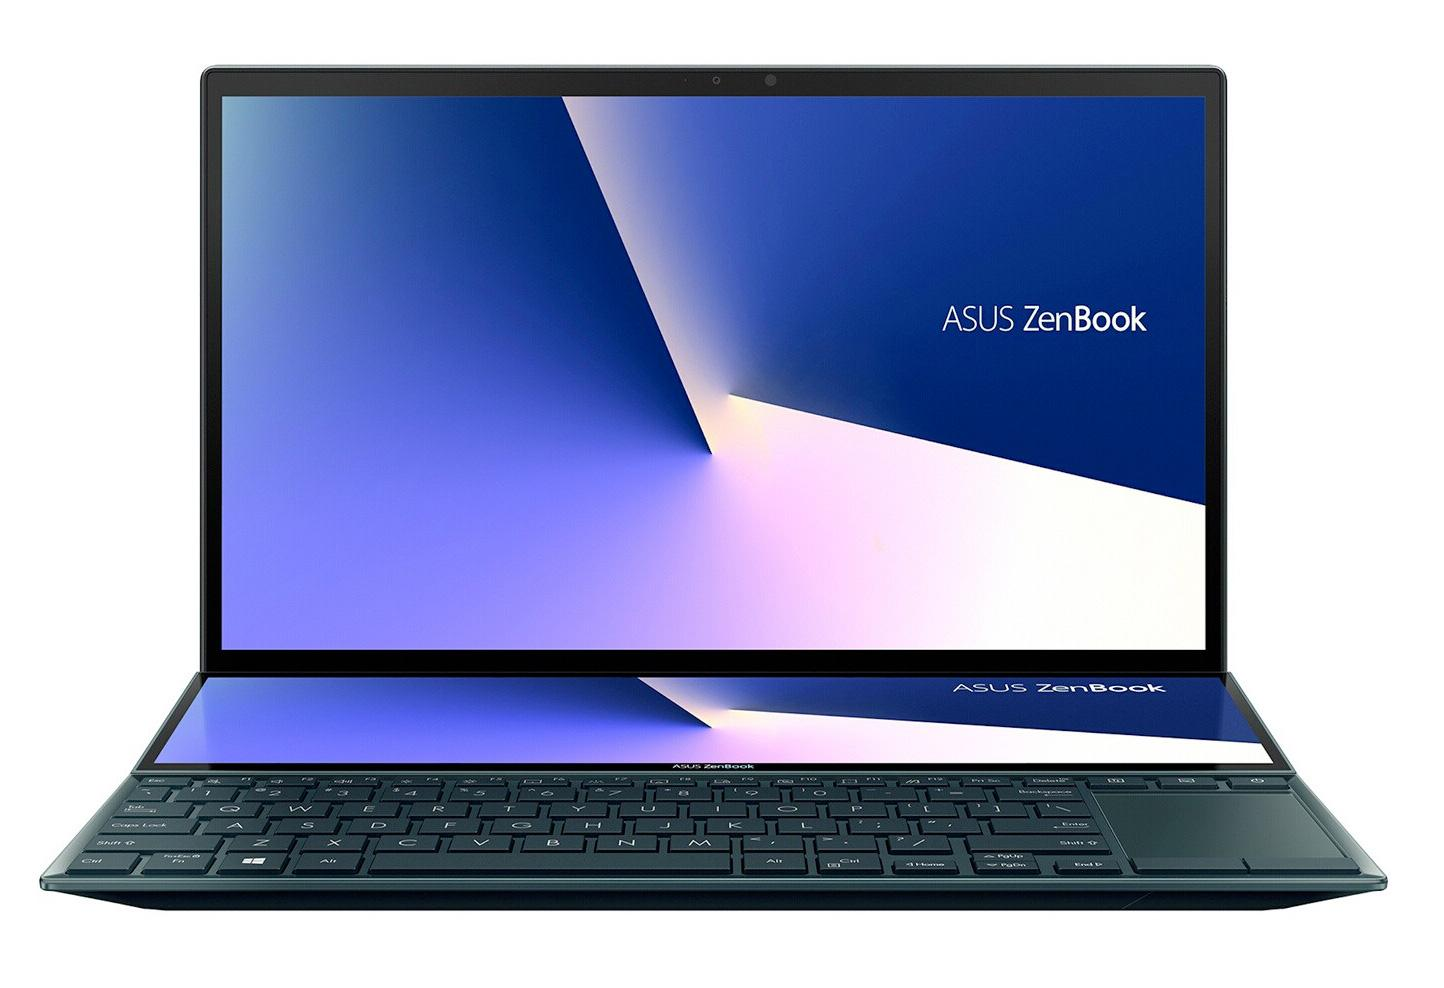 Ordinateur portable Asus ZenBook Duo UX482EG-HY142T Bleu/Noir - Tactile, MX450, ScreenPad Plus - photo 2